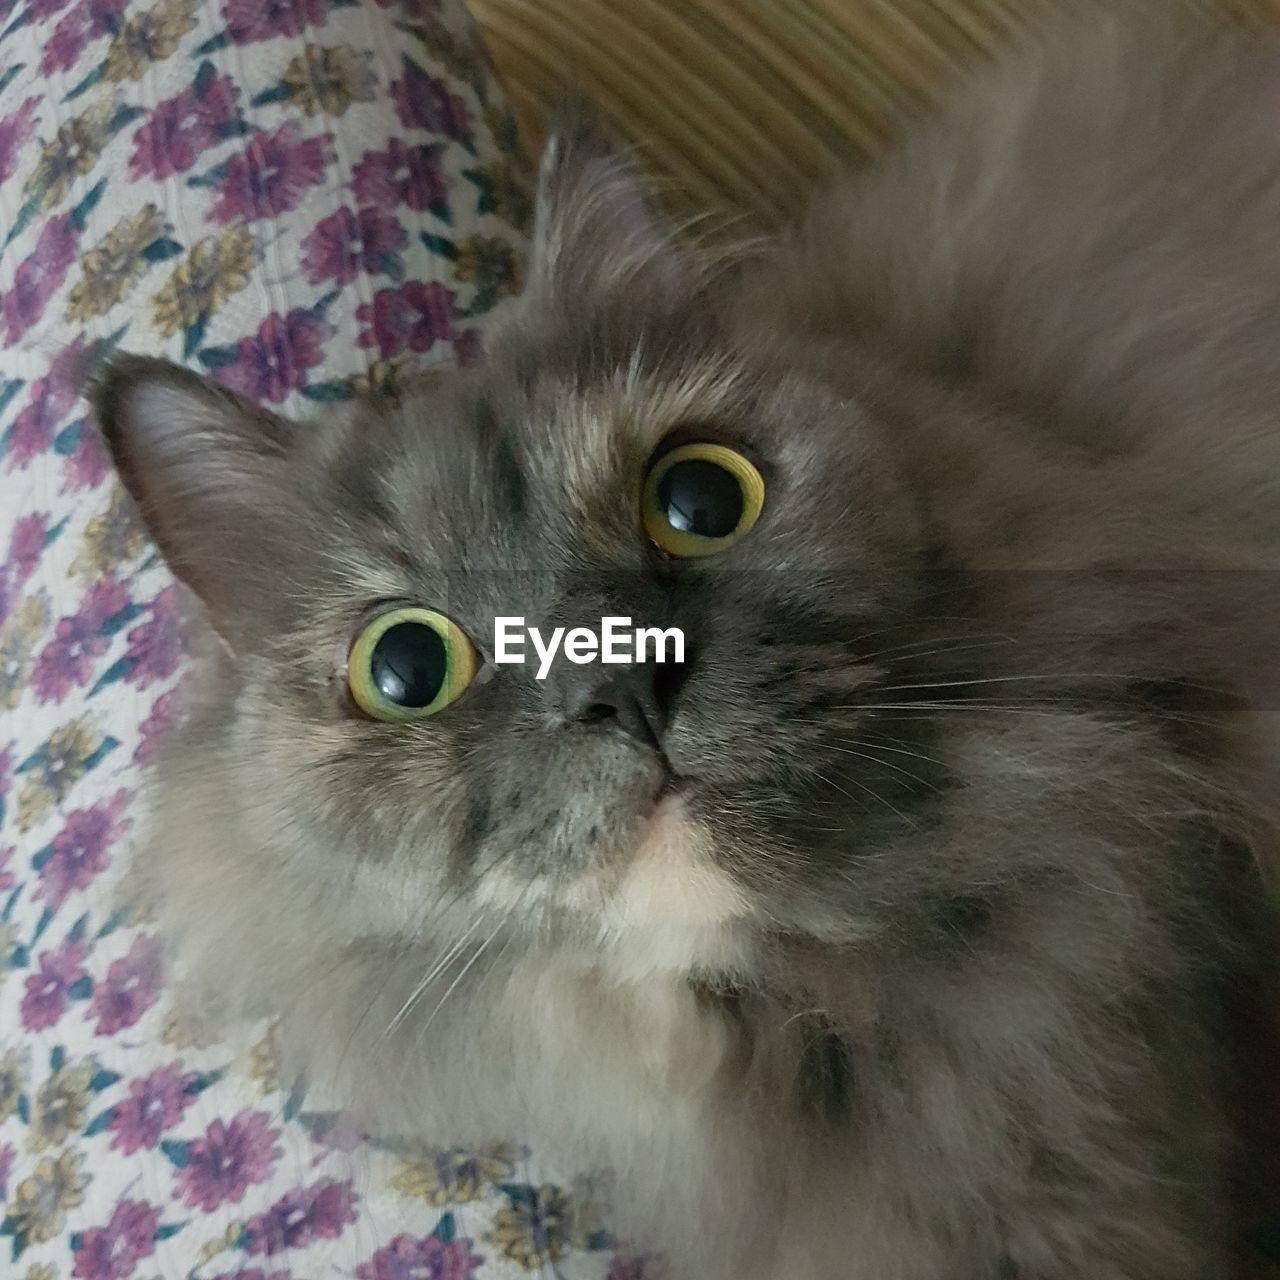 domestic, mammal, animal themes, domestic animals, pets, animal, cat, domestic cat, one animal, feline, vertebrate, indoors, looking at camera, portrait, whisker, close-up, no people, relaxation, home interior, high angle view, persian cat, animal eye, animal head